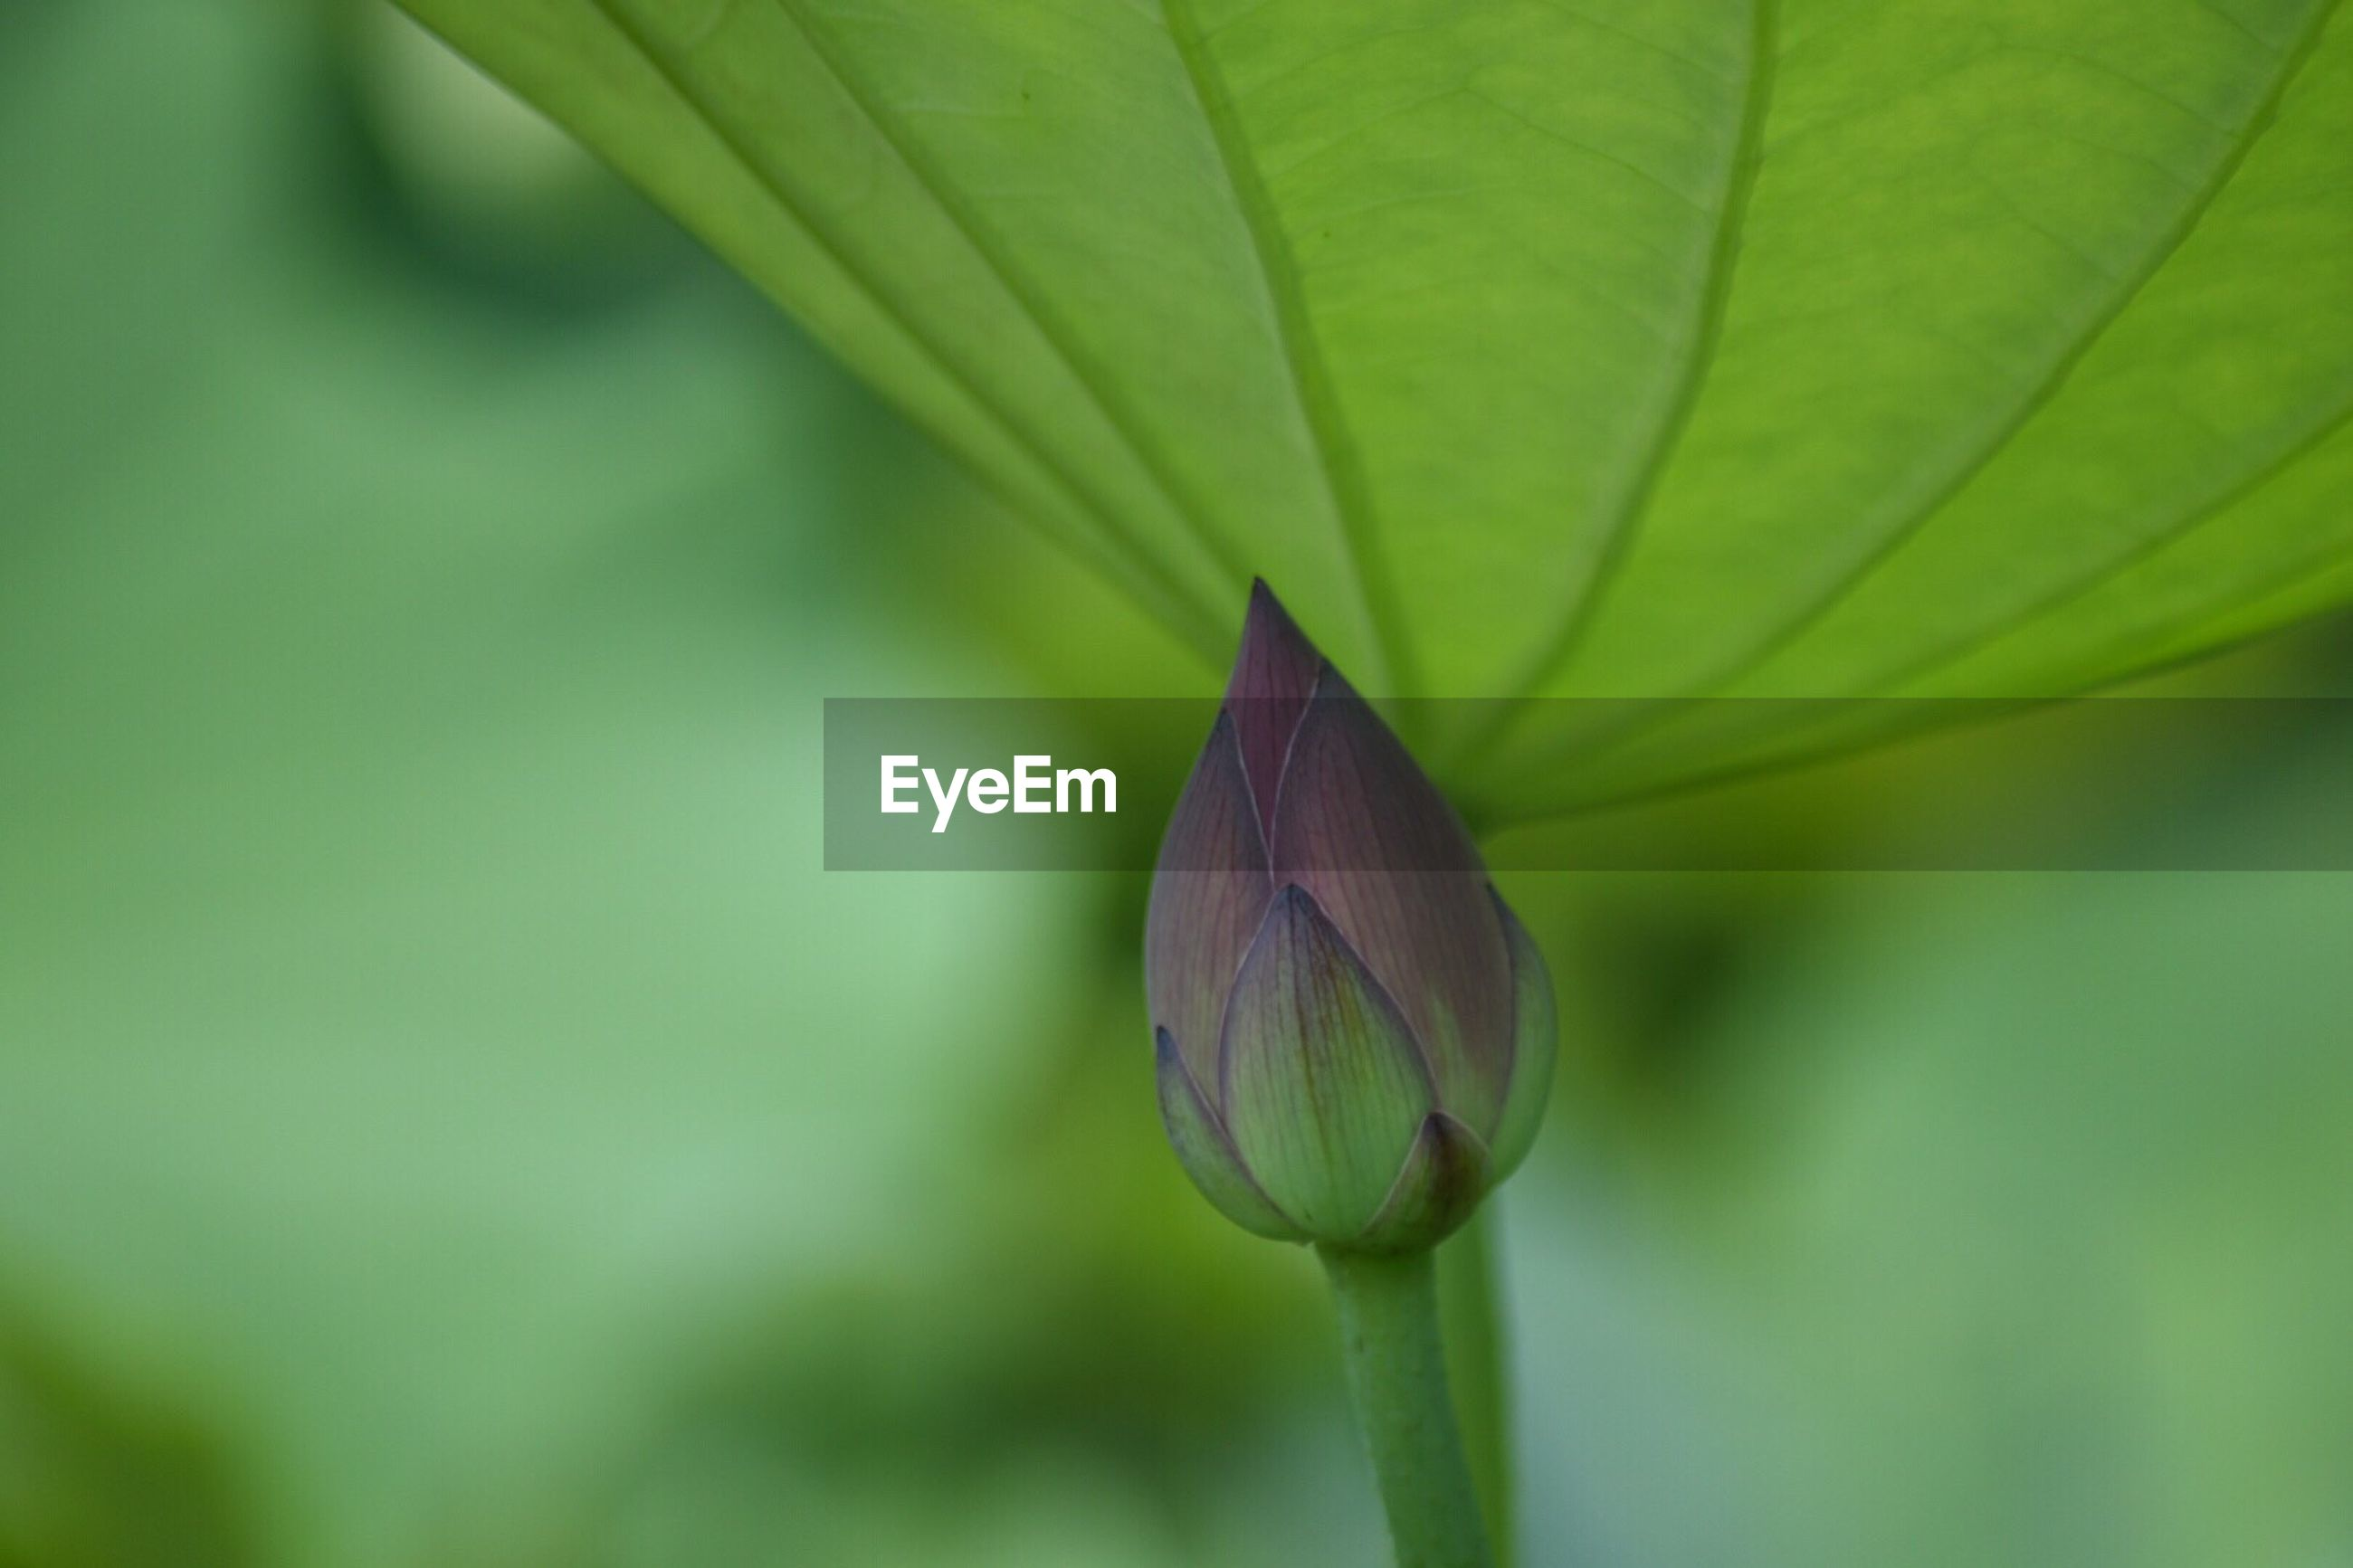 leaf, green color, nature, fragility, day, close-up, focus on foreground, plant, beauty in nature, outdoors, no people, growth, new life, freshness, animal themes, flower head